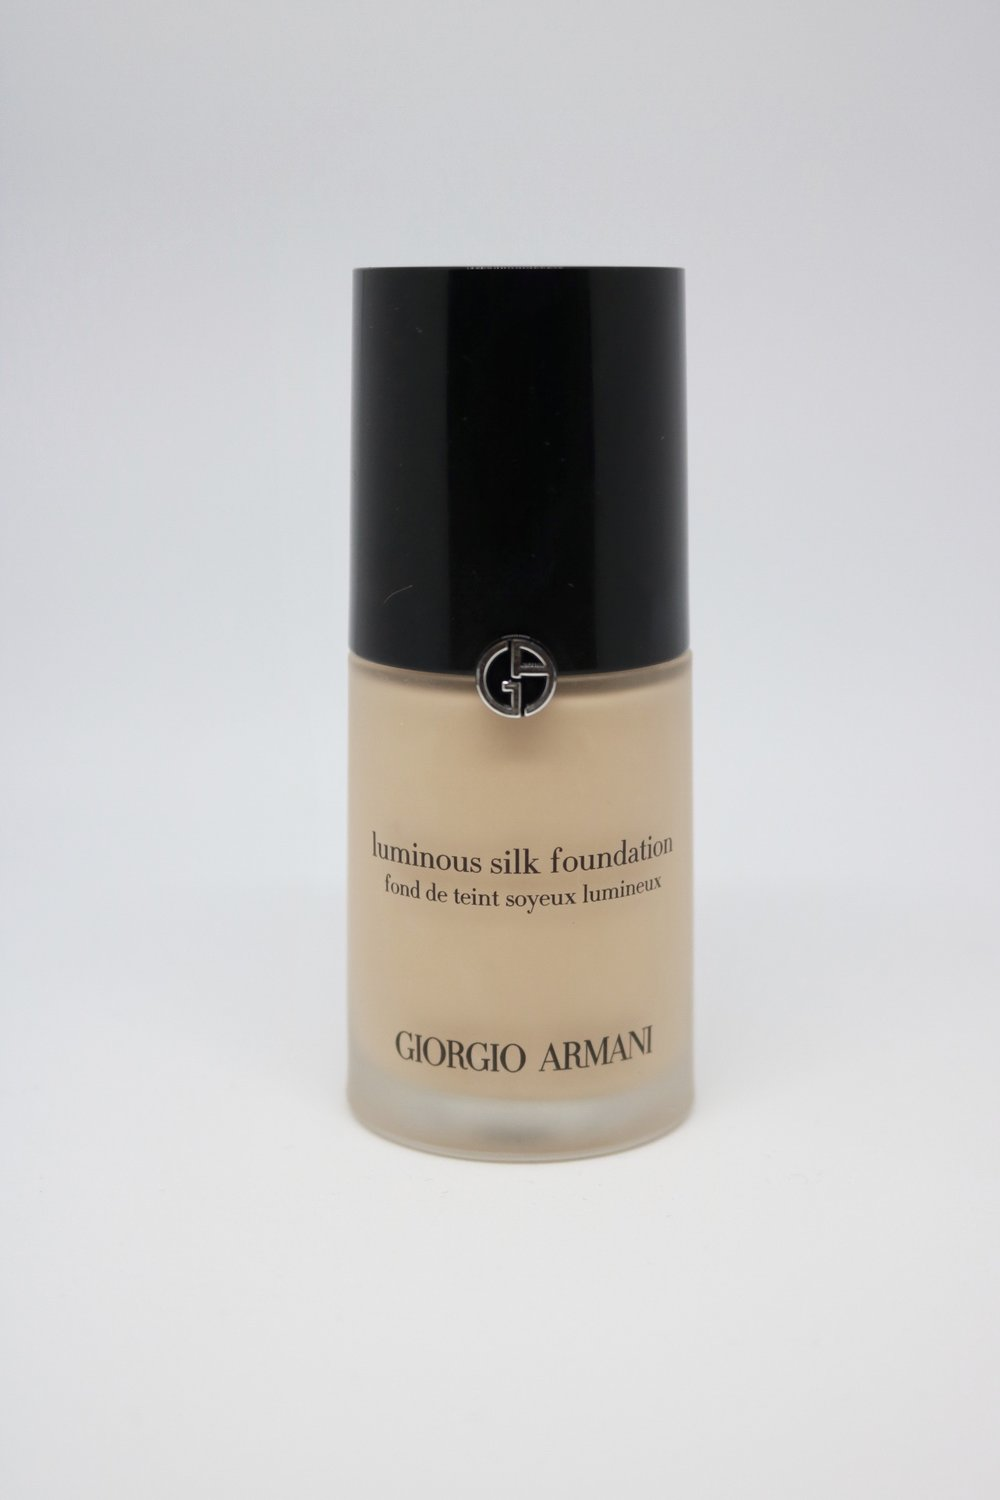 giorgio armani luminous silk foundation brittany lauren brittanylaurens